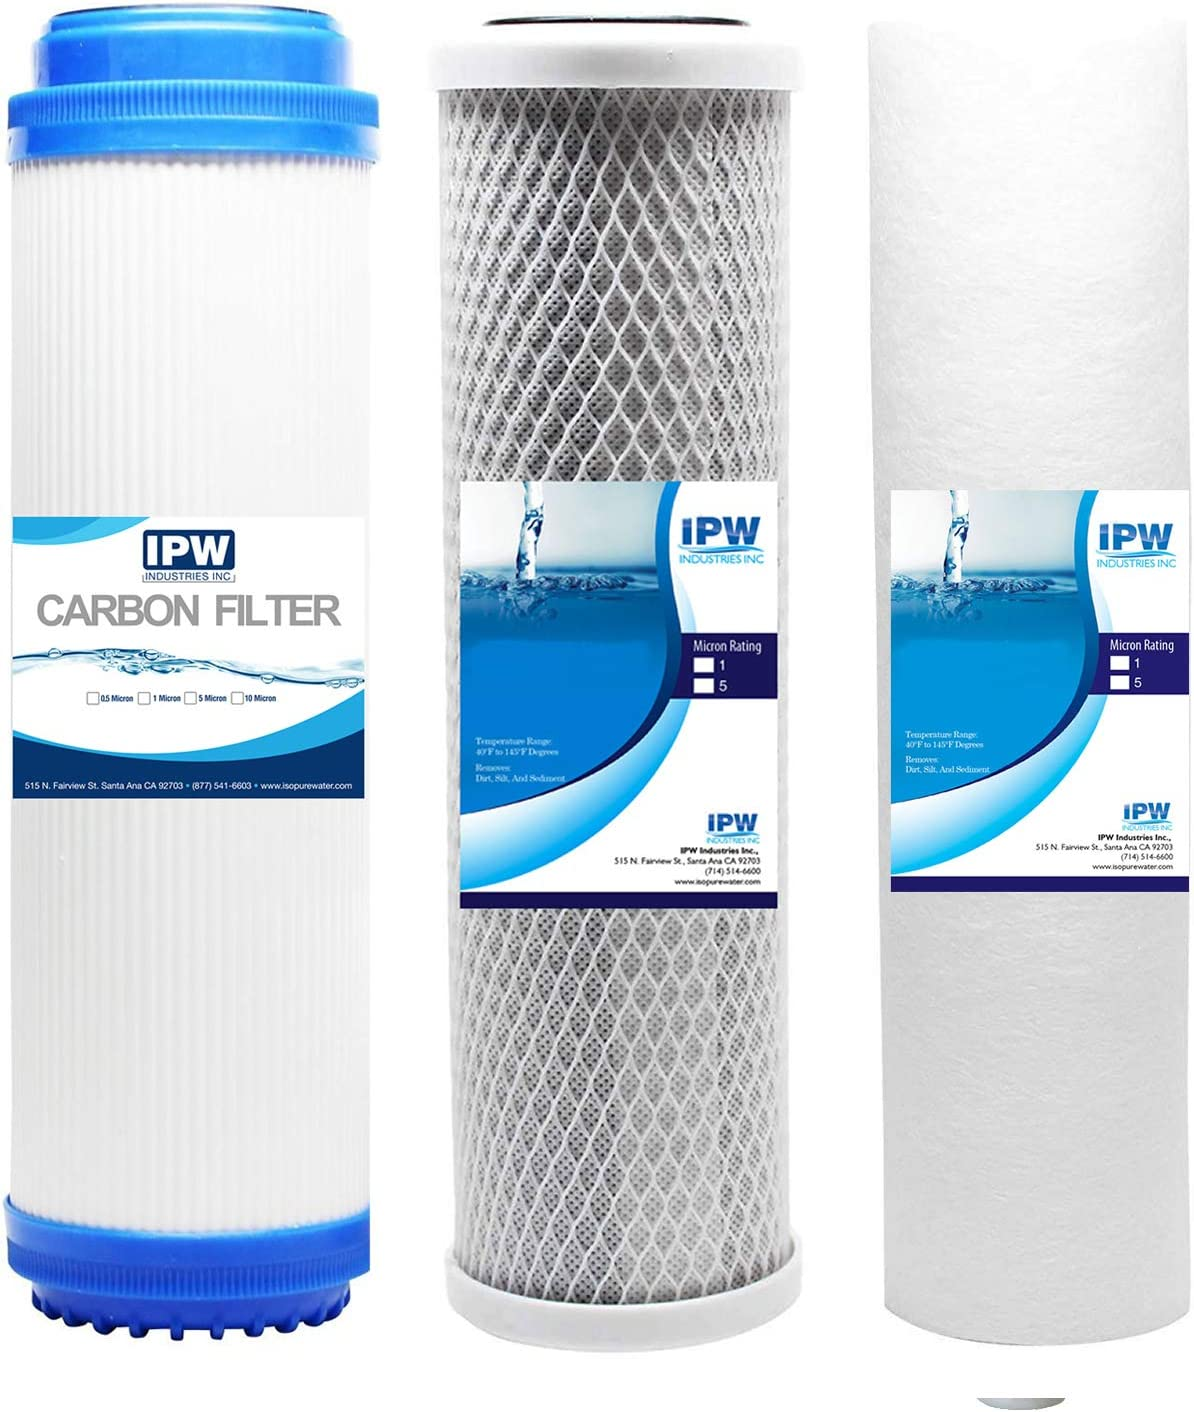 Granular Activated Carbon Fits iSpring F3 10-inch Universal Replacement Filter Set Cartridges for Reverse Osmosis and 3-Stage Water Filtration Systems Sediment and Carbon Block Filters